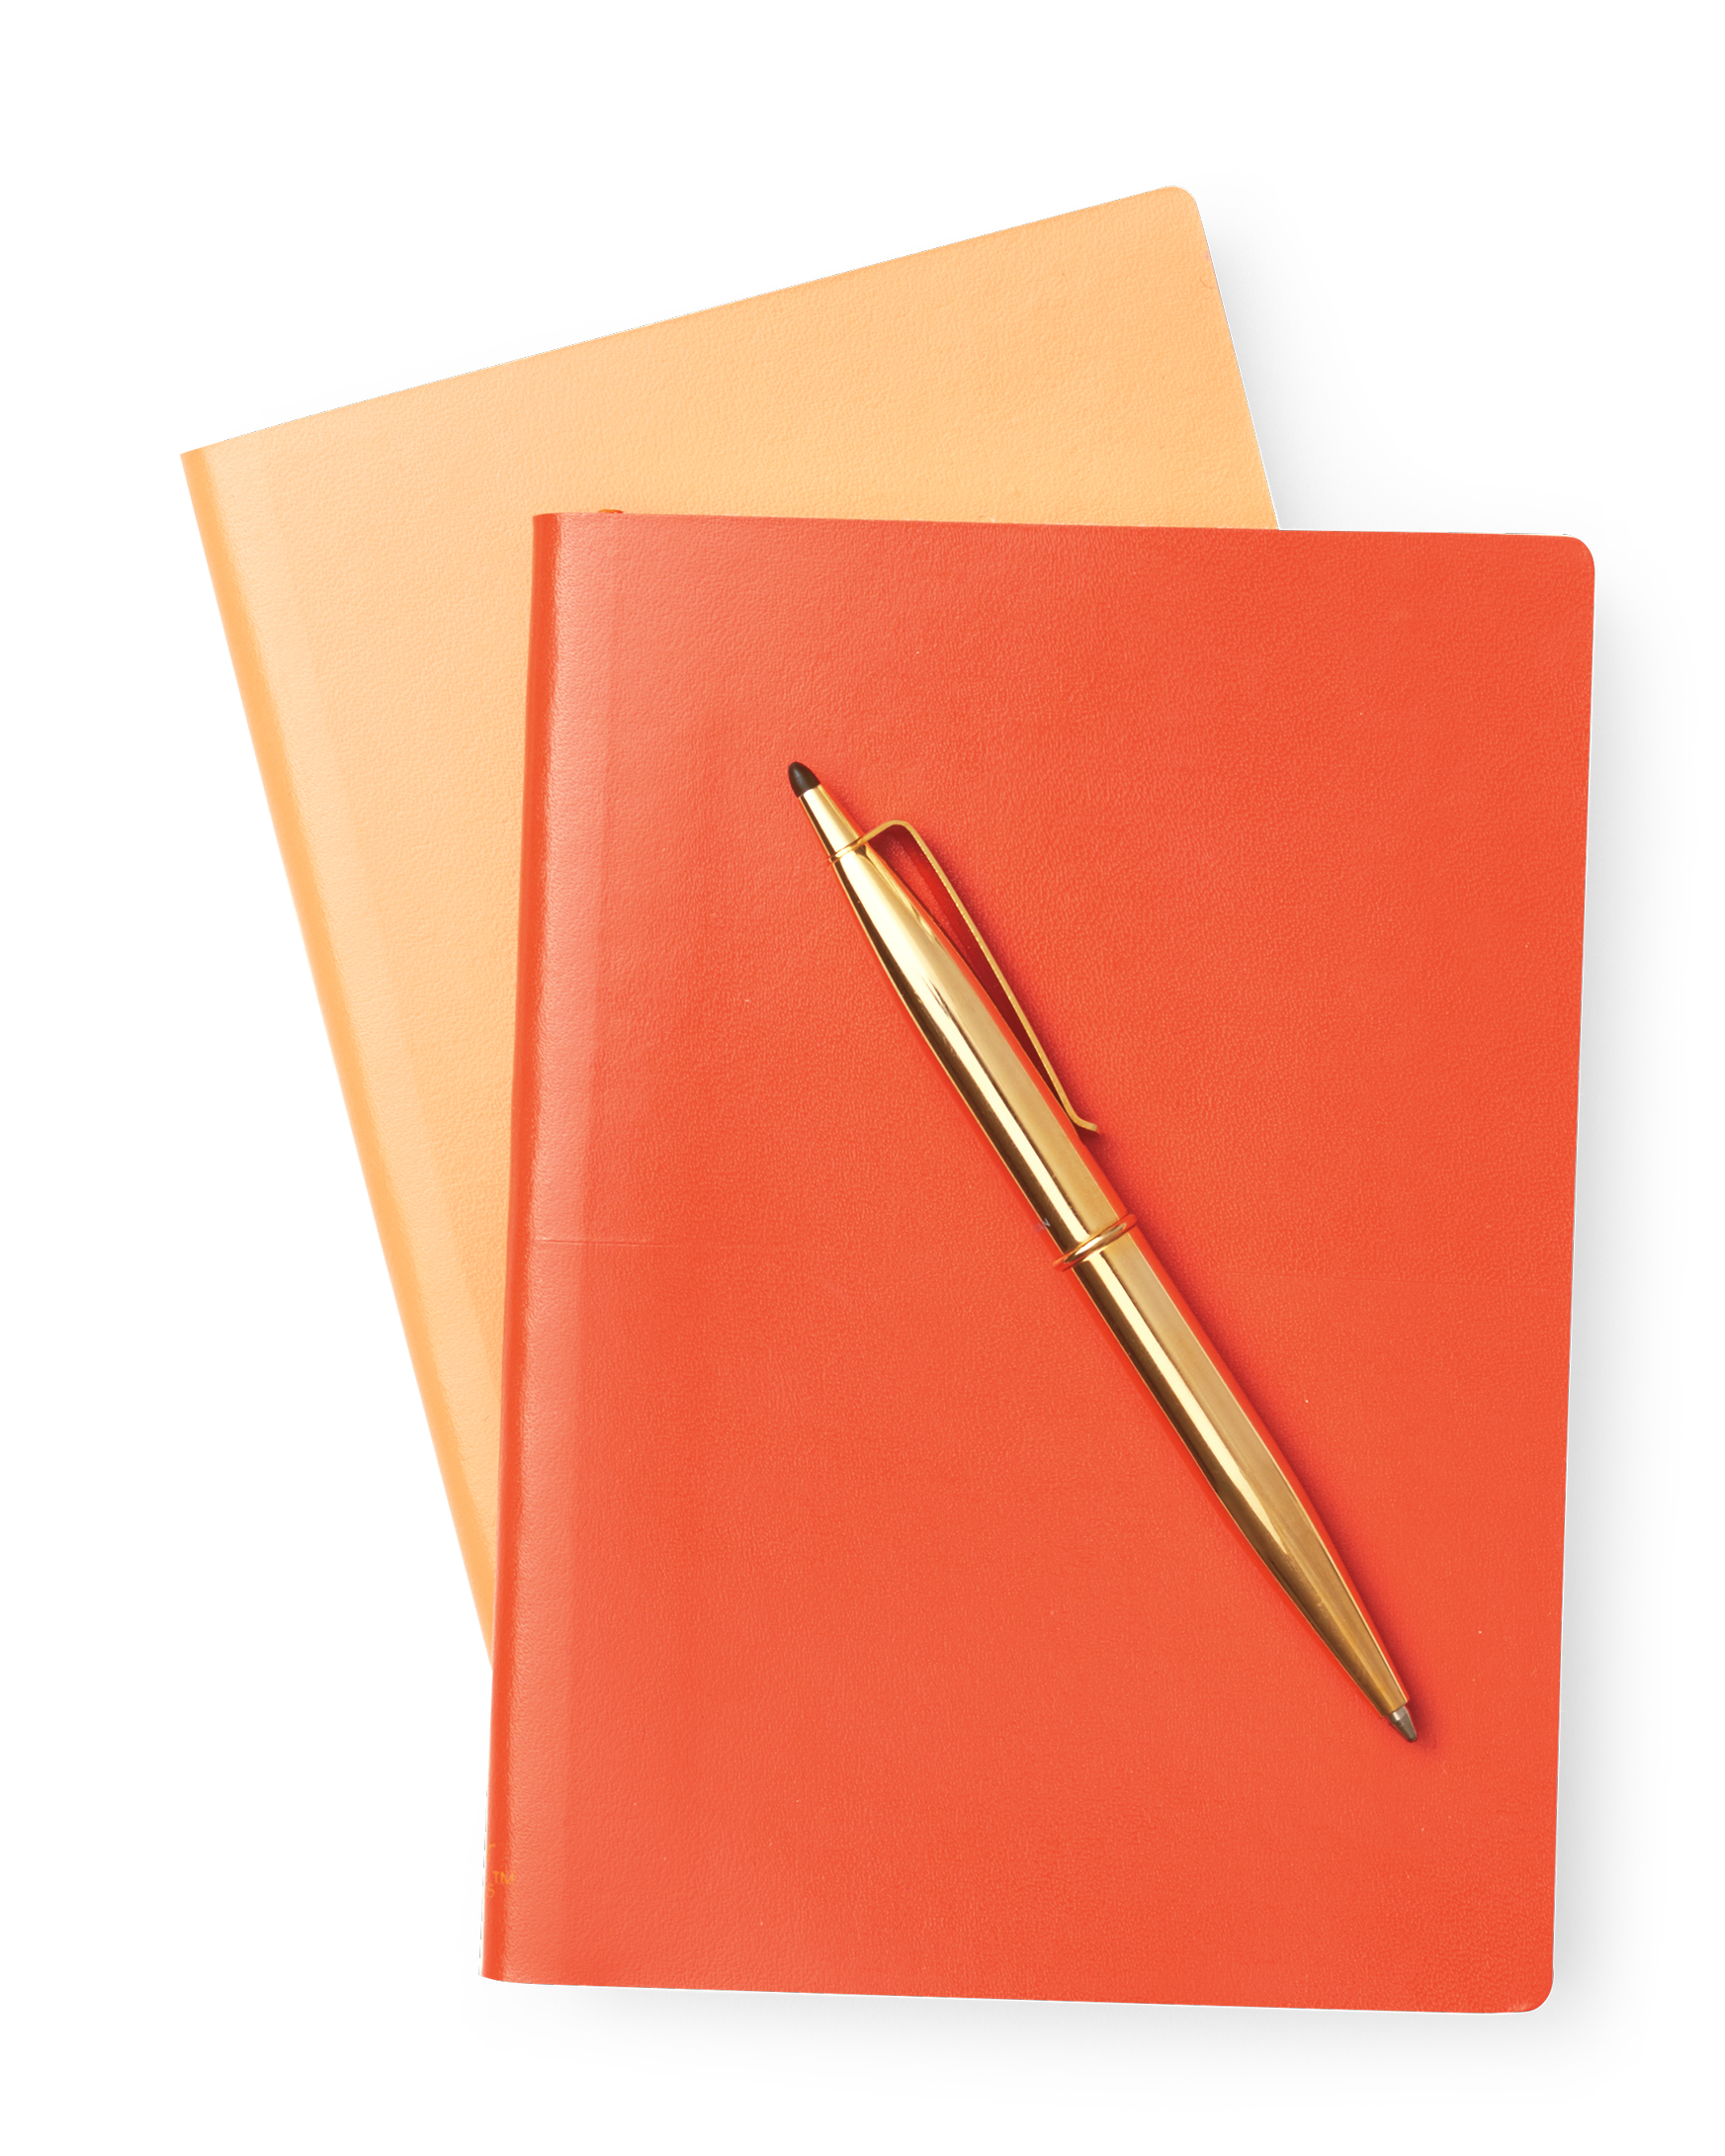 small-notebooks-with-pen-190-d112474.jpg